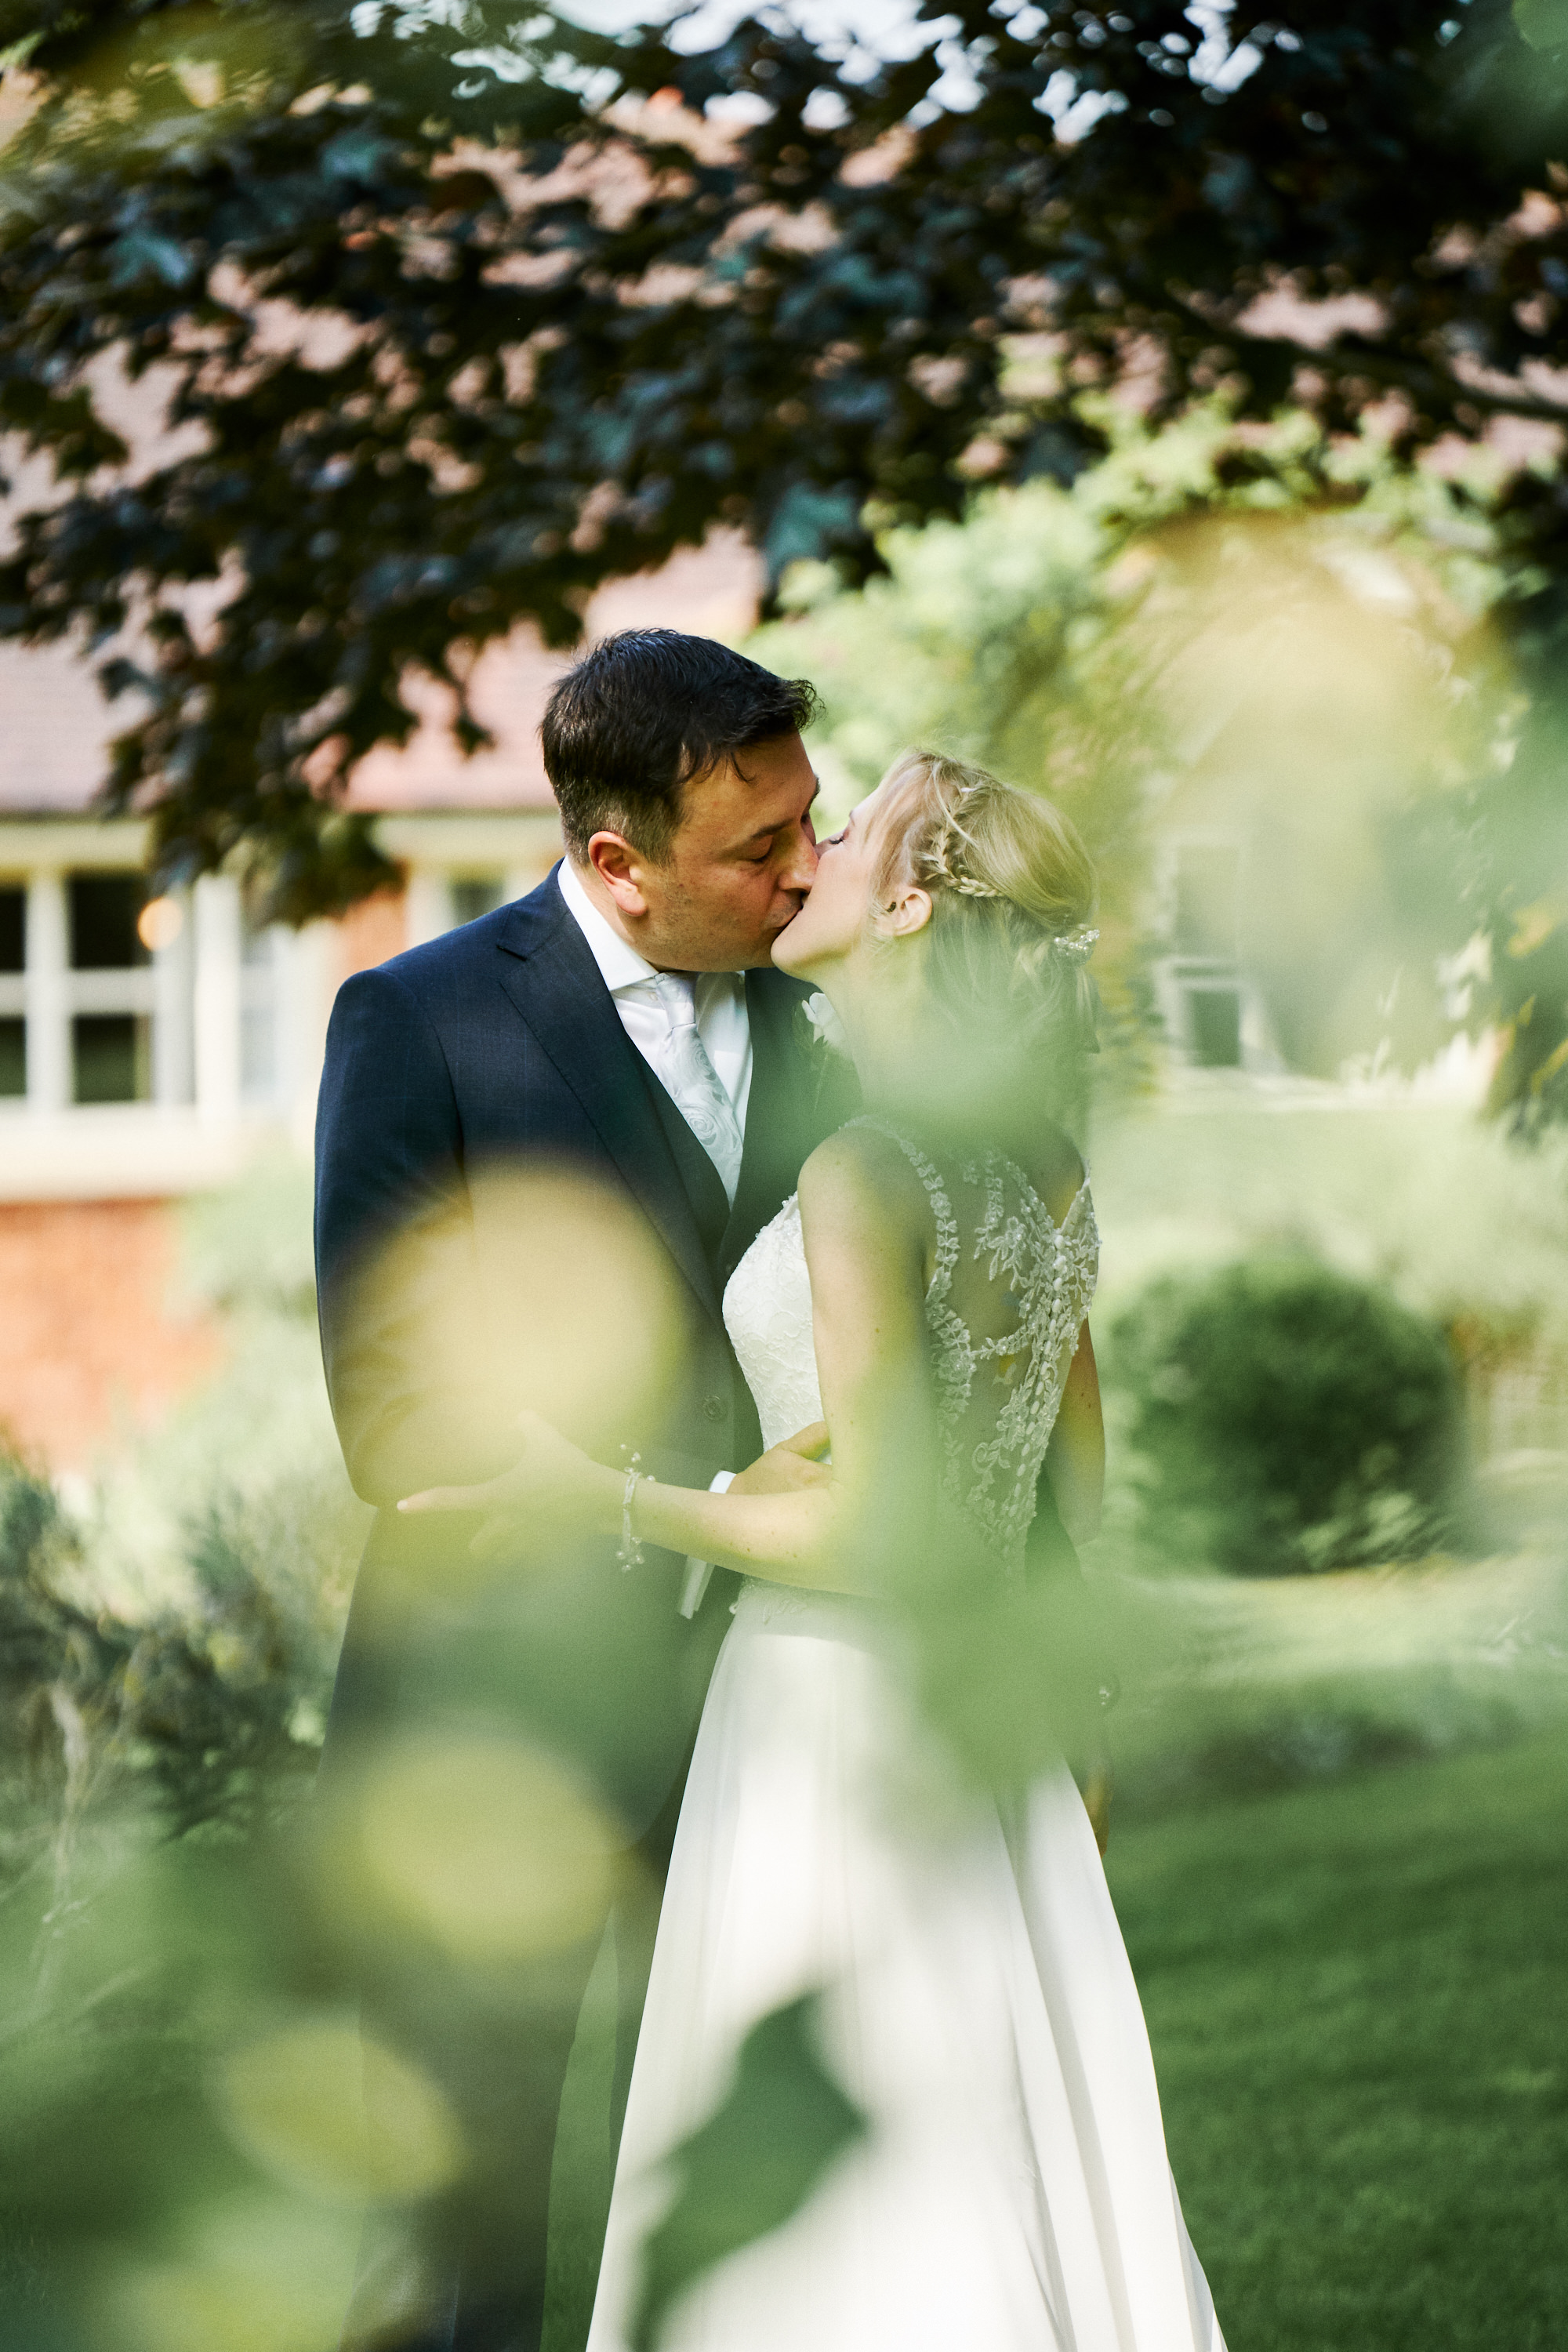 Sally Paul Wedding Cantley House Hotel at Cantley House Hotel Wokingham on 26 May 2018.